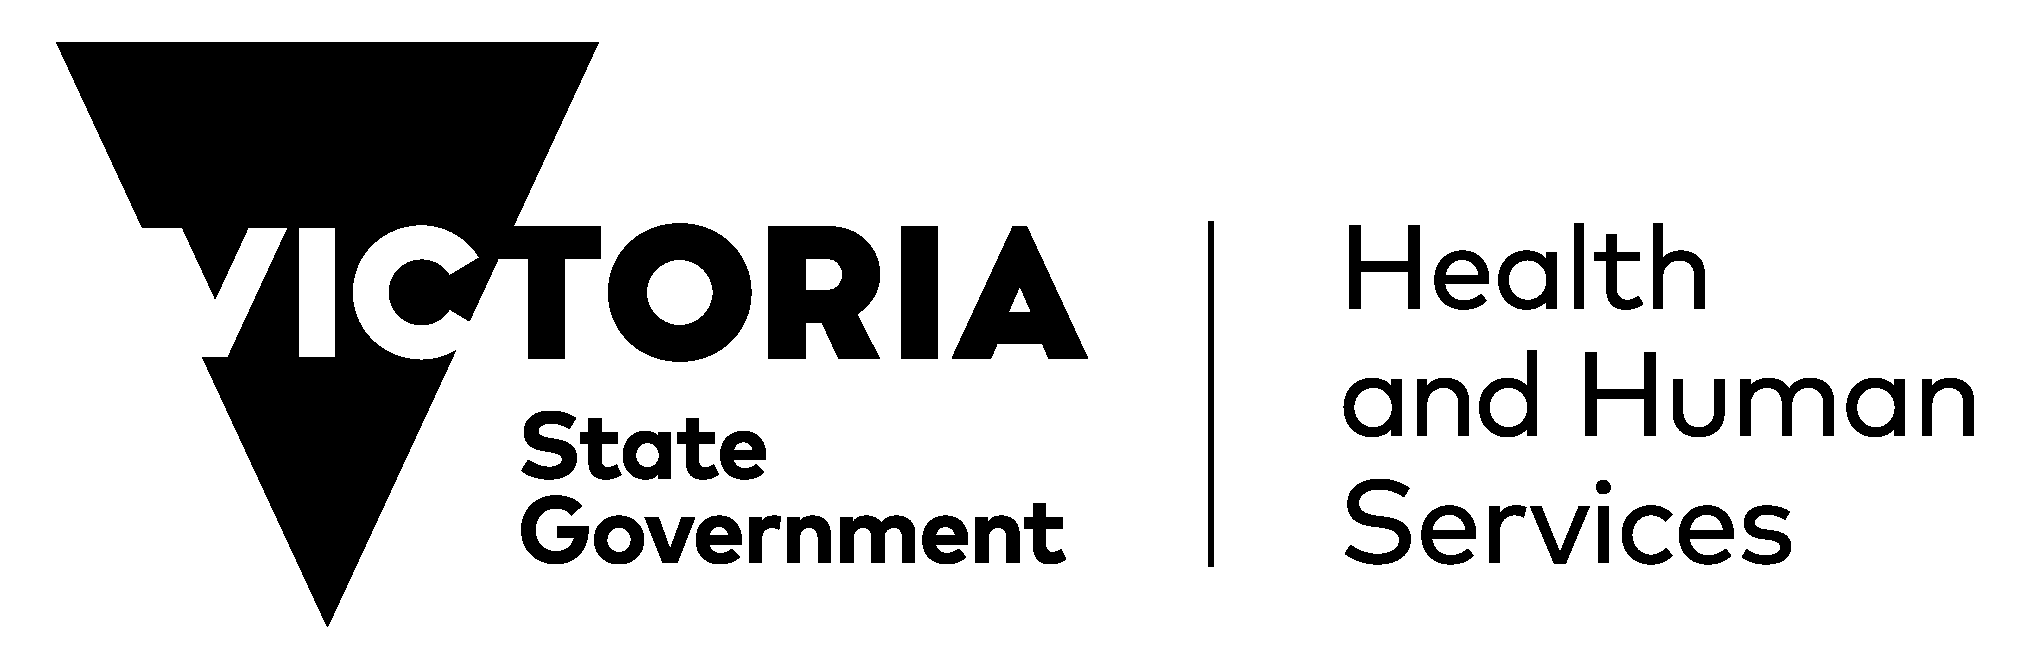 Health and human service of Victoria state government logo